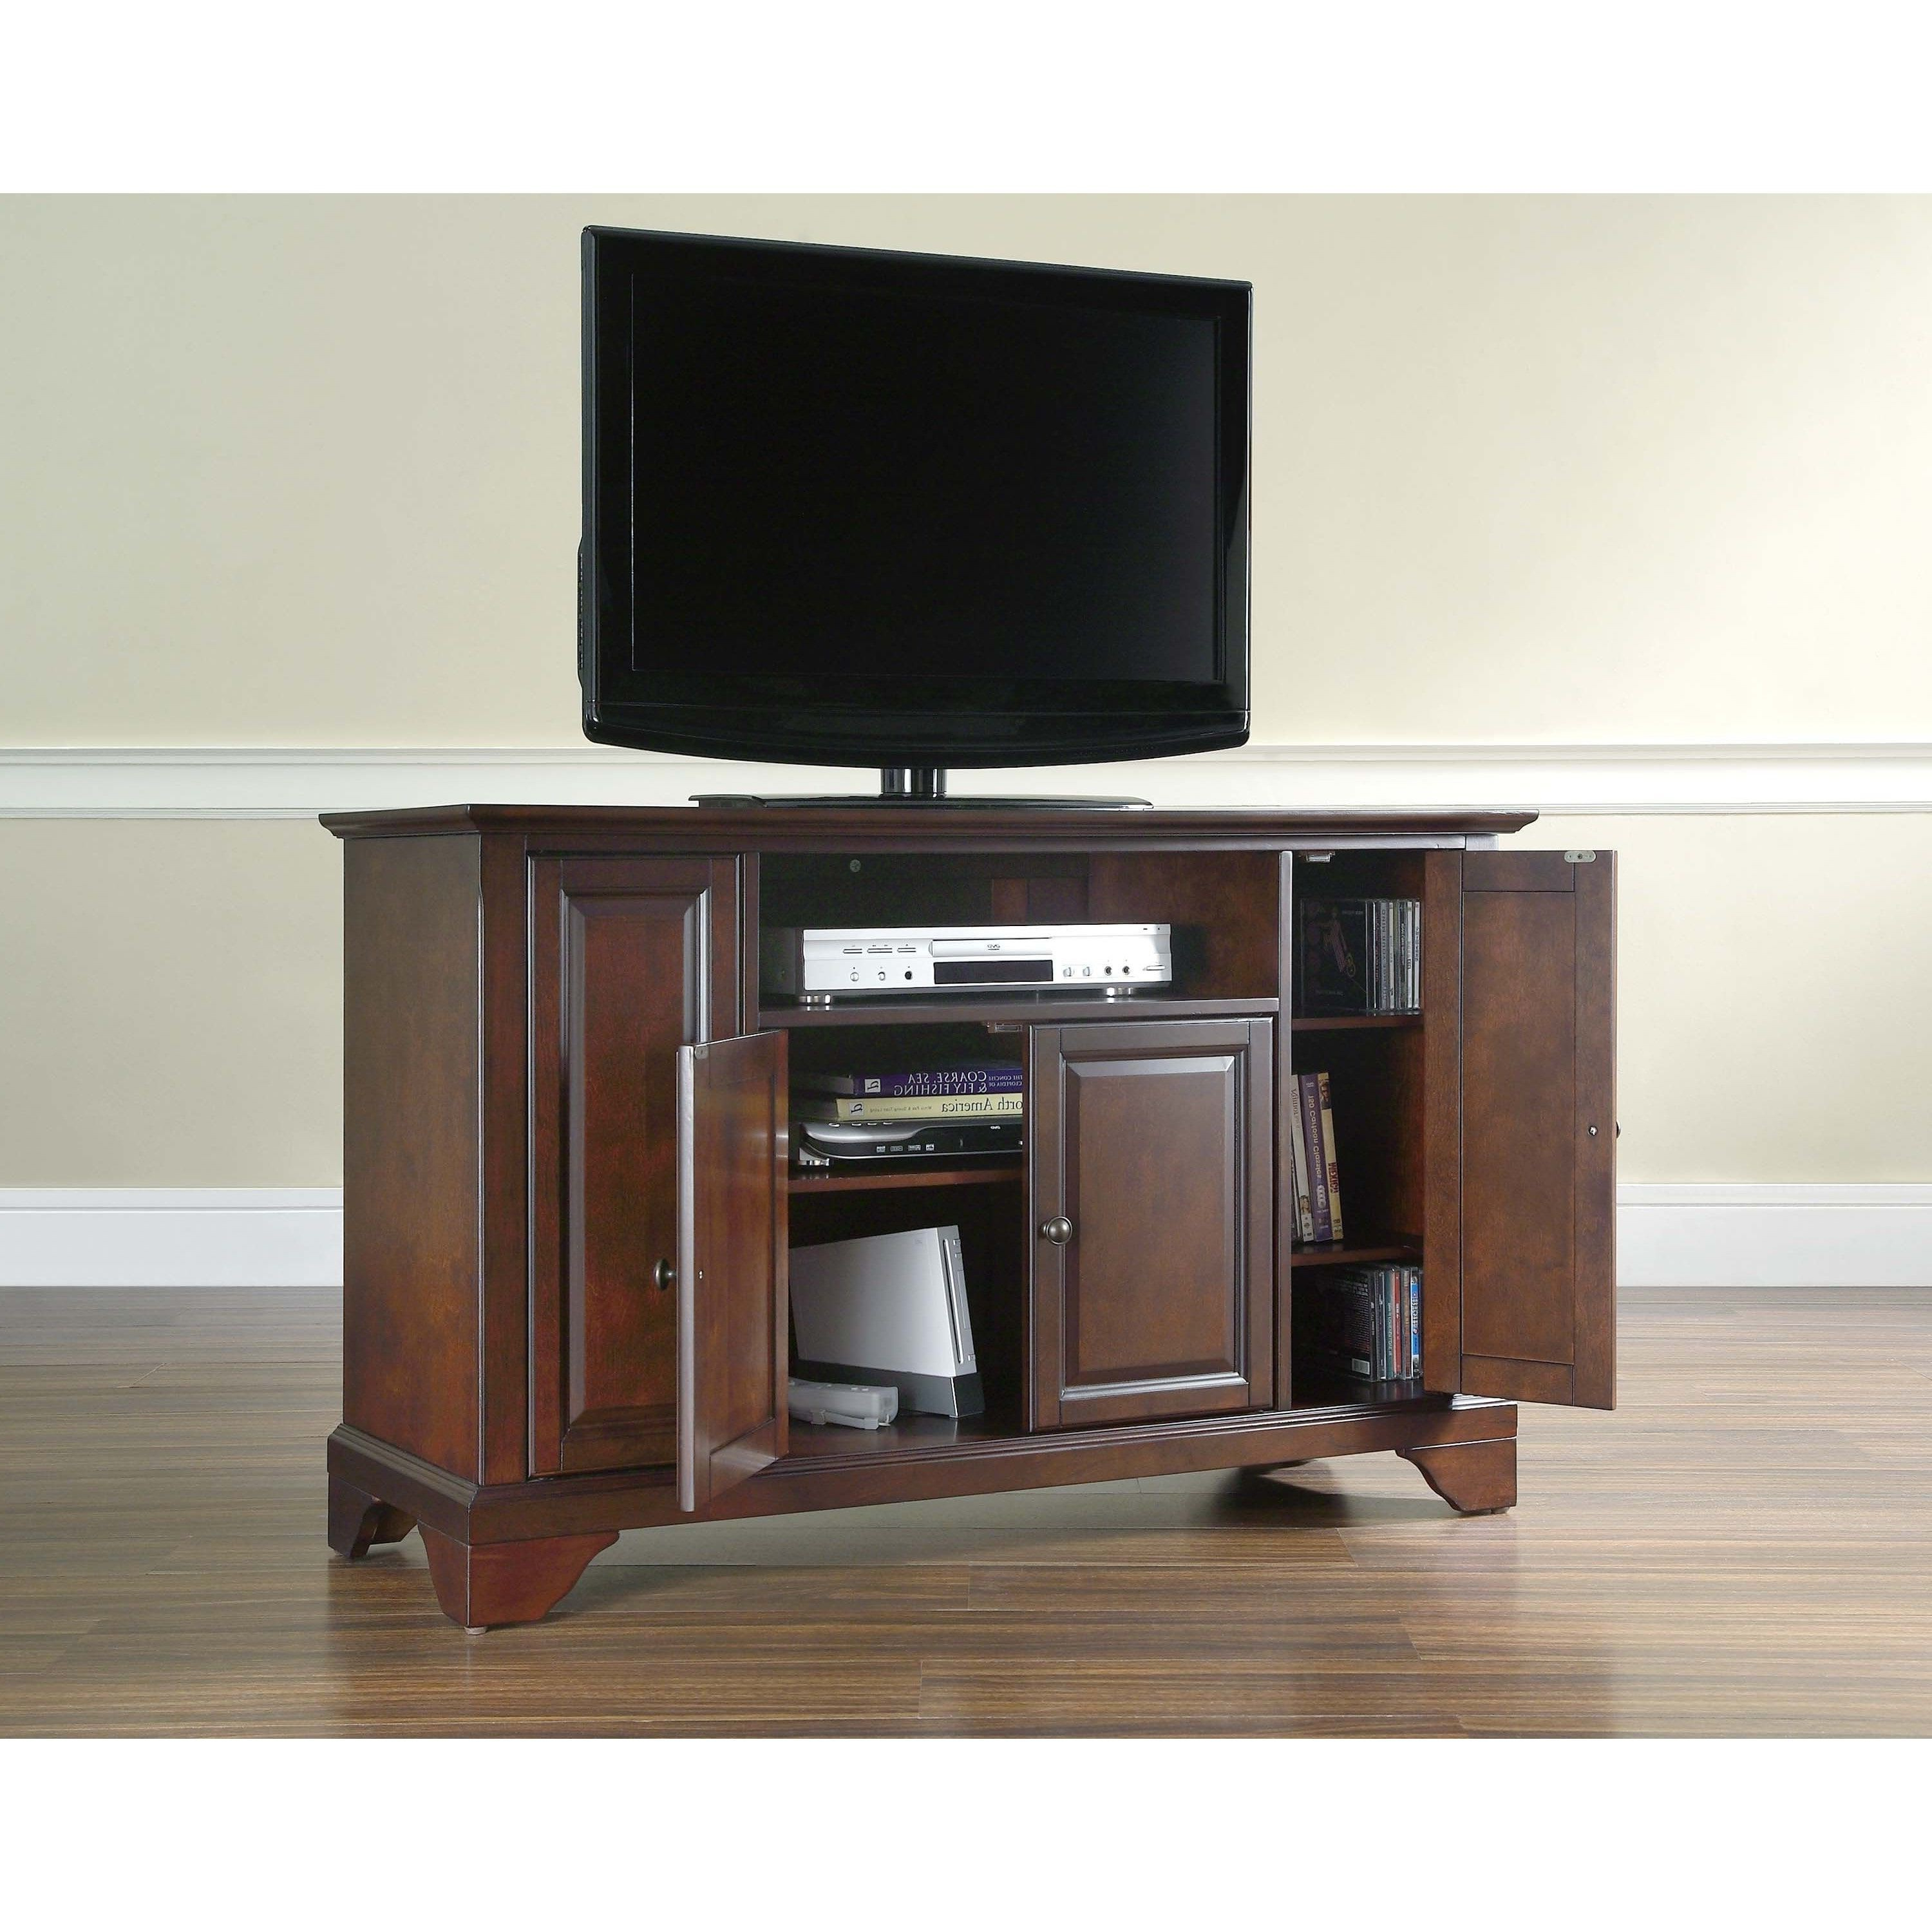 Popular Luxury Emerson Tv Stand – Furnitureinredsea Throughout Sinclair Grey 74 Inch Tv Stands (View 12 of 20)